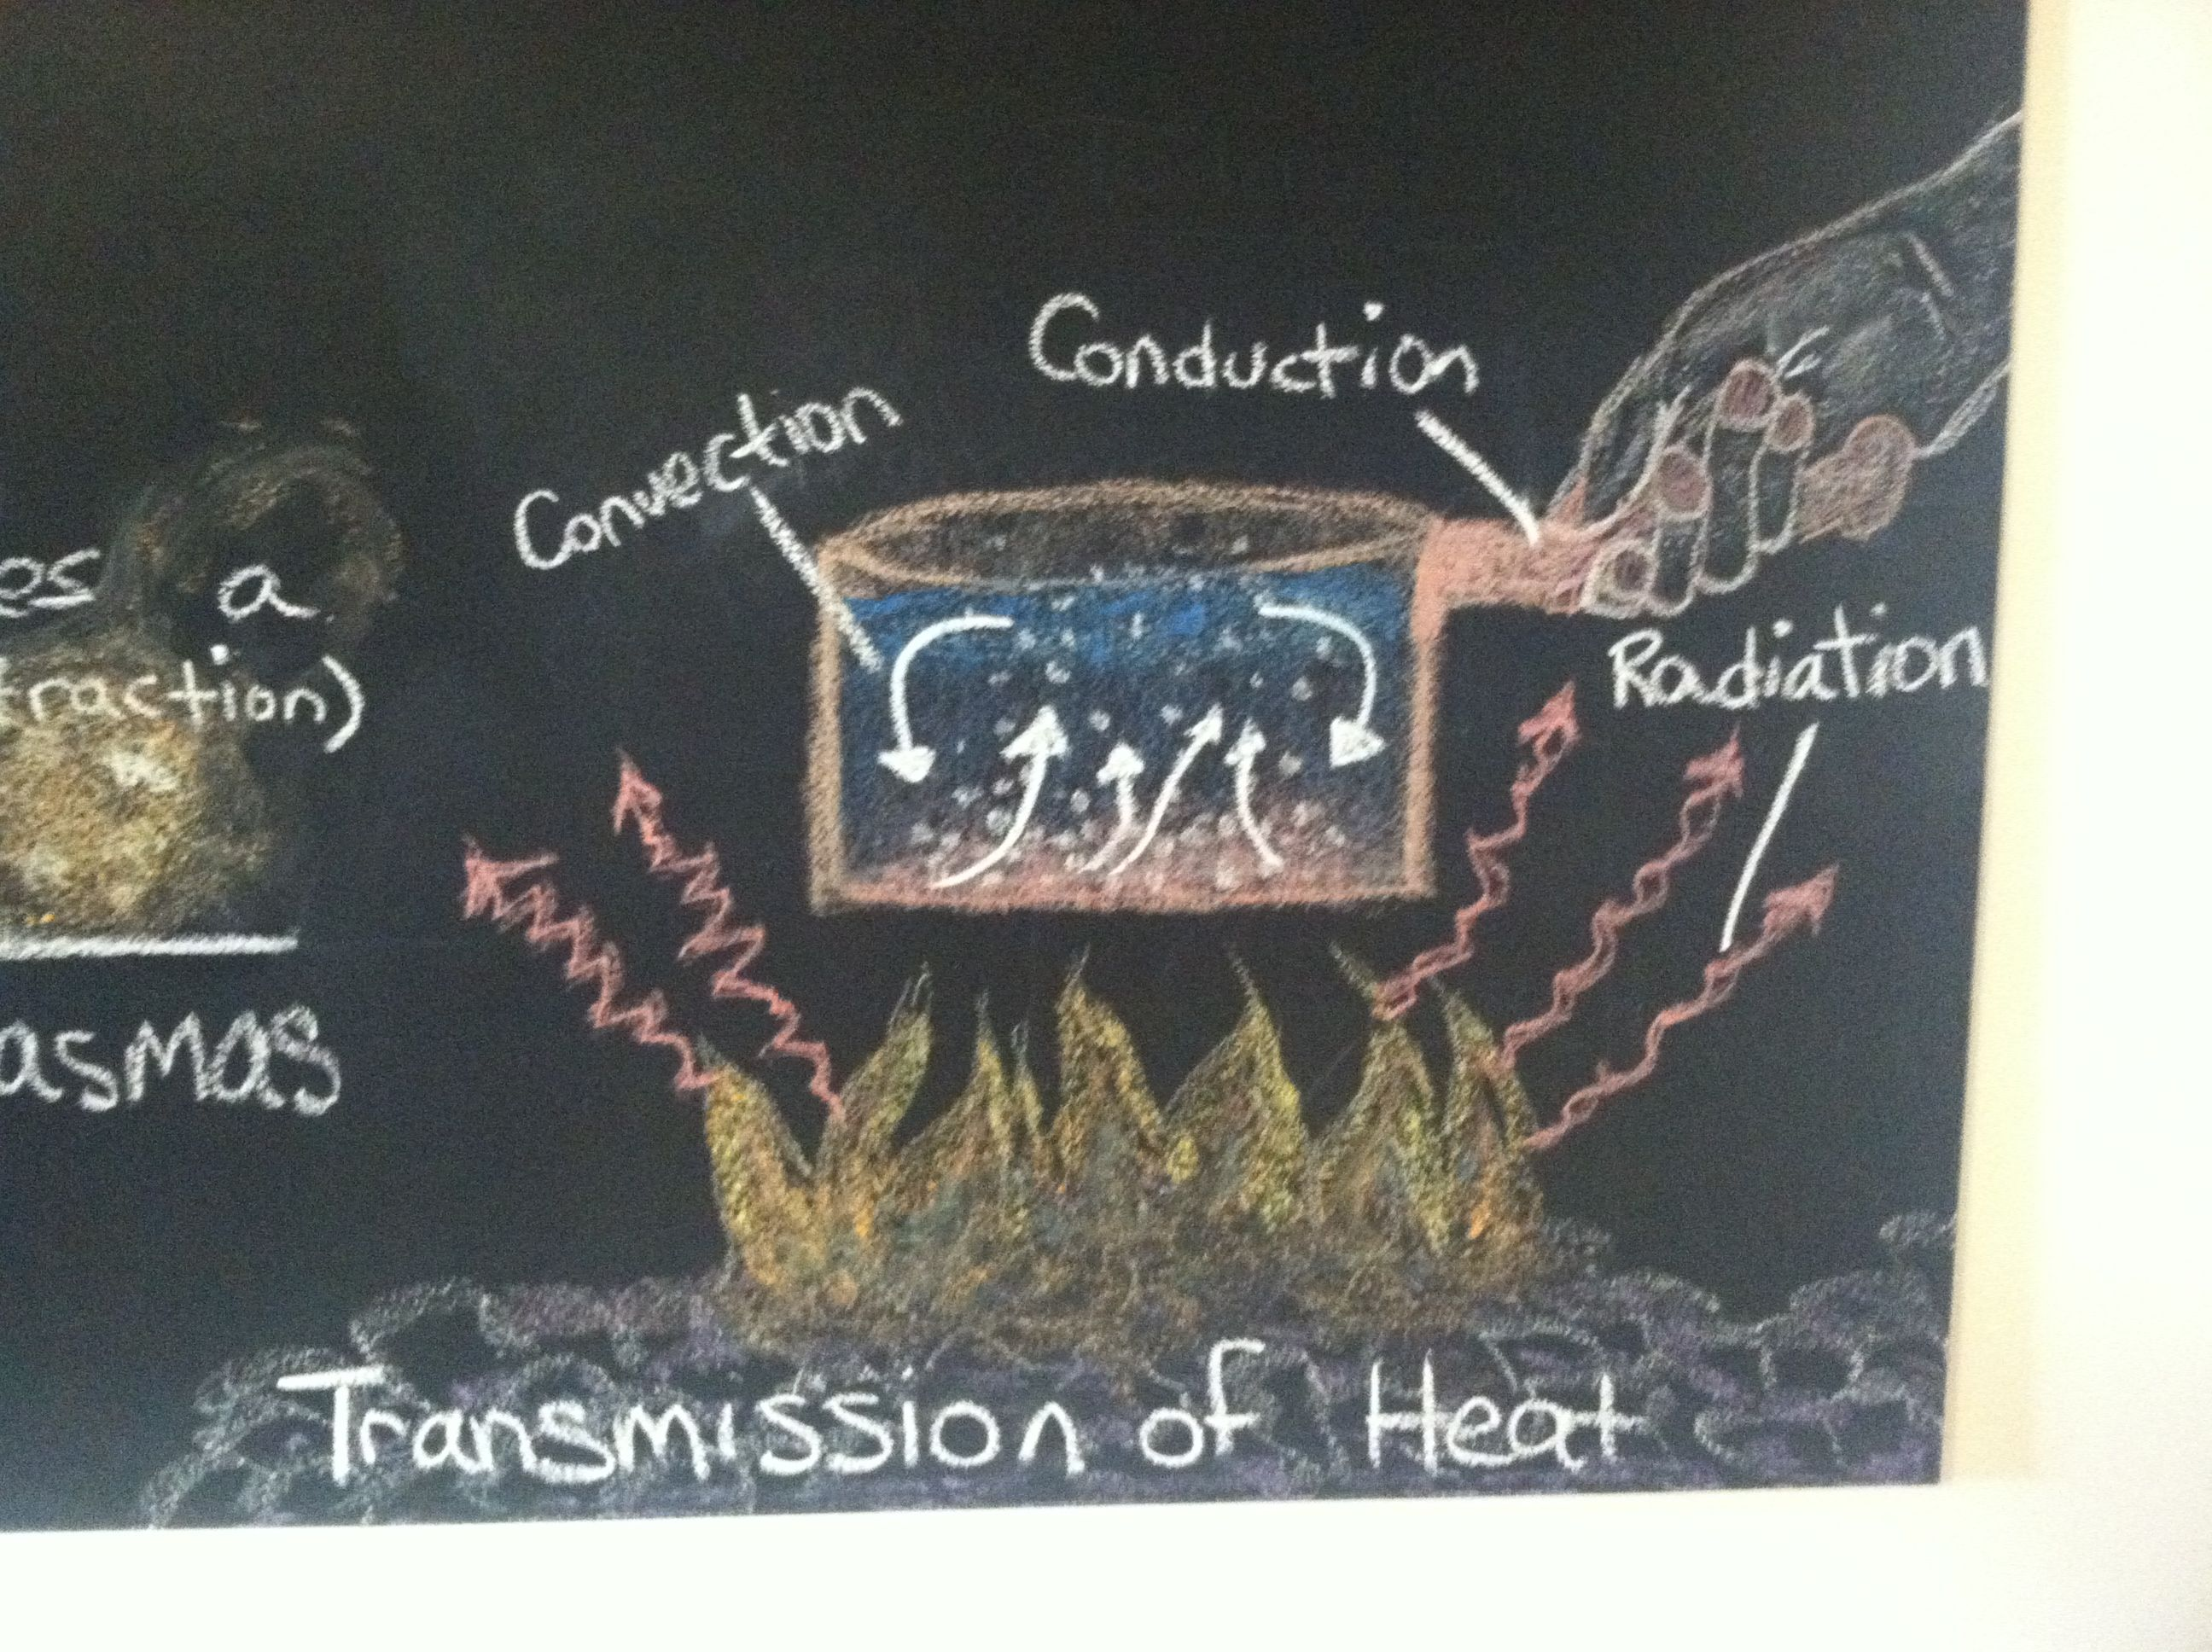 Transmission of heat 6th grade physics lesson day 2 waldorf transmission of heat 6th grade physics lesson day 2 waldorf homeschool chalk board sciox Image collections